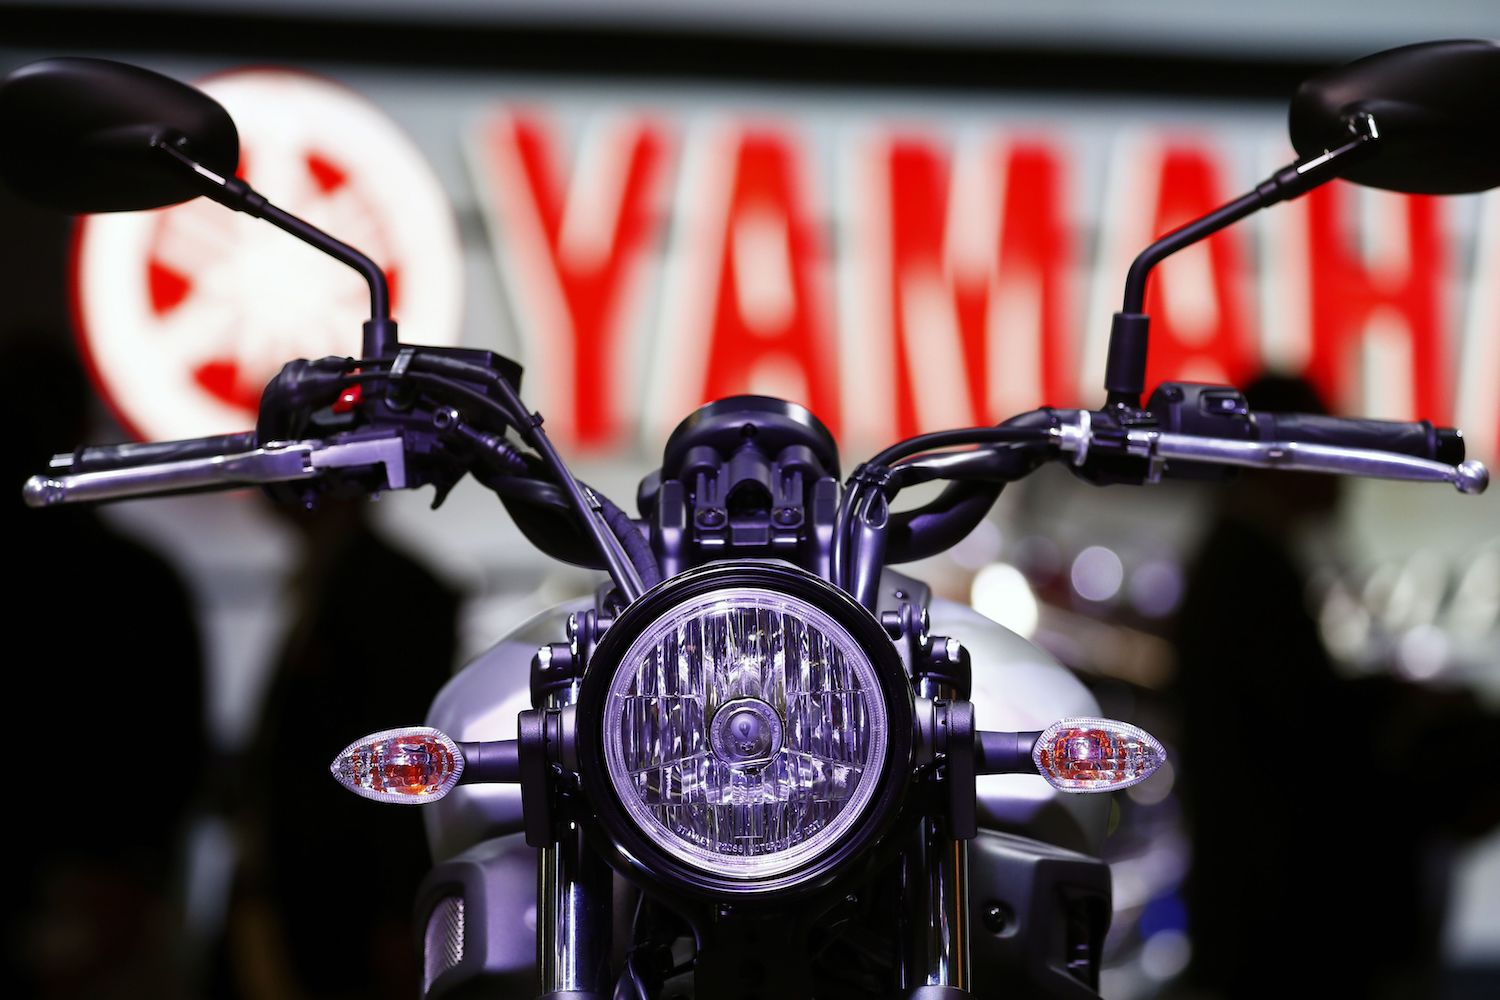 Yamaha investments for the future